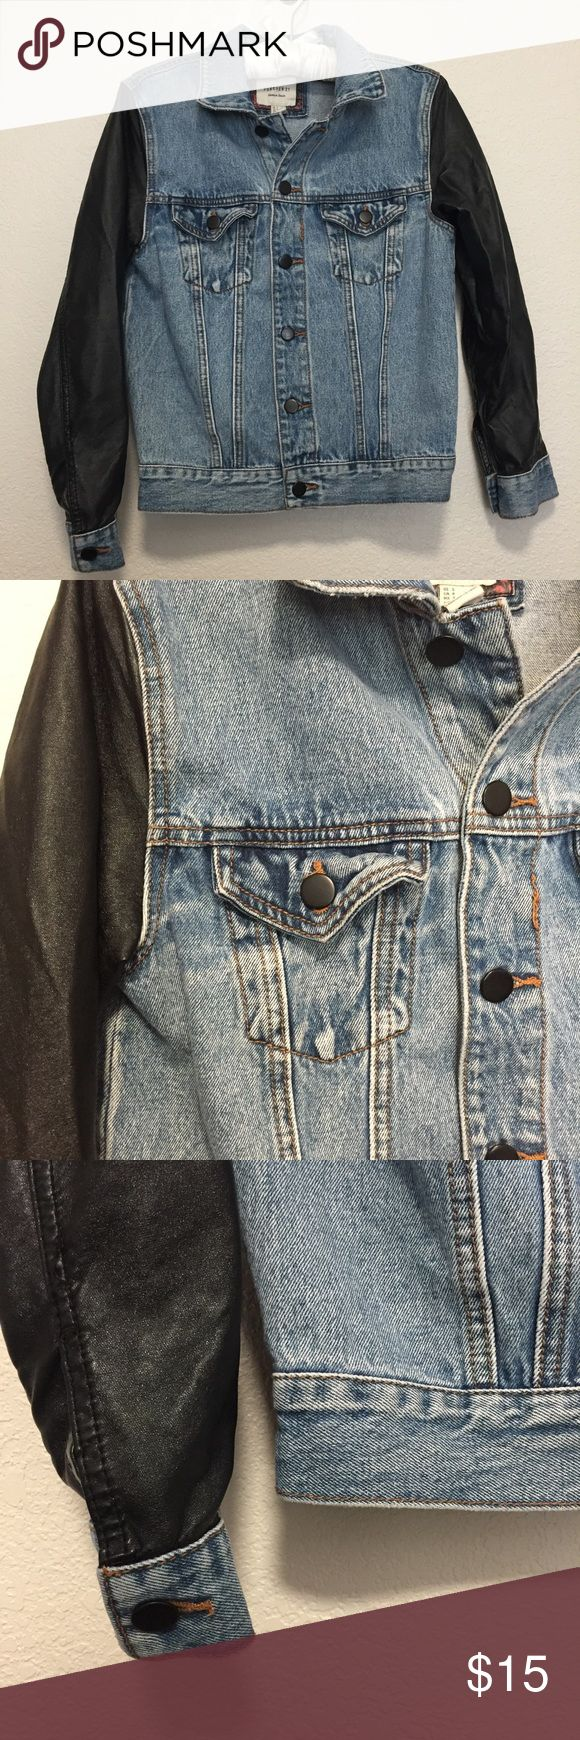 💣🖤💎Be the female G Easy💎🖤💣 Jean and faux leather jacket in a size small. Really good condition and super cute on😘 Jackets & Coats Jean Jackets